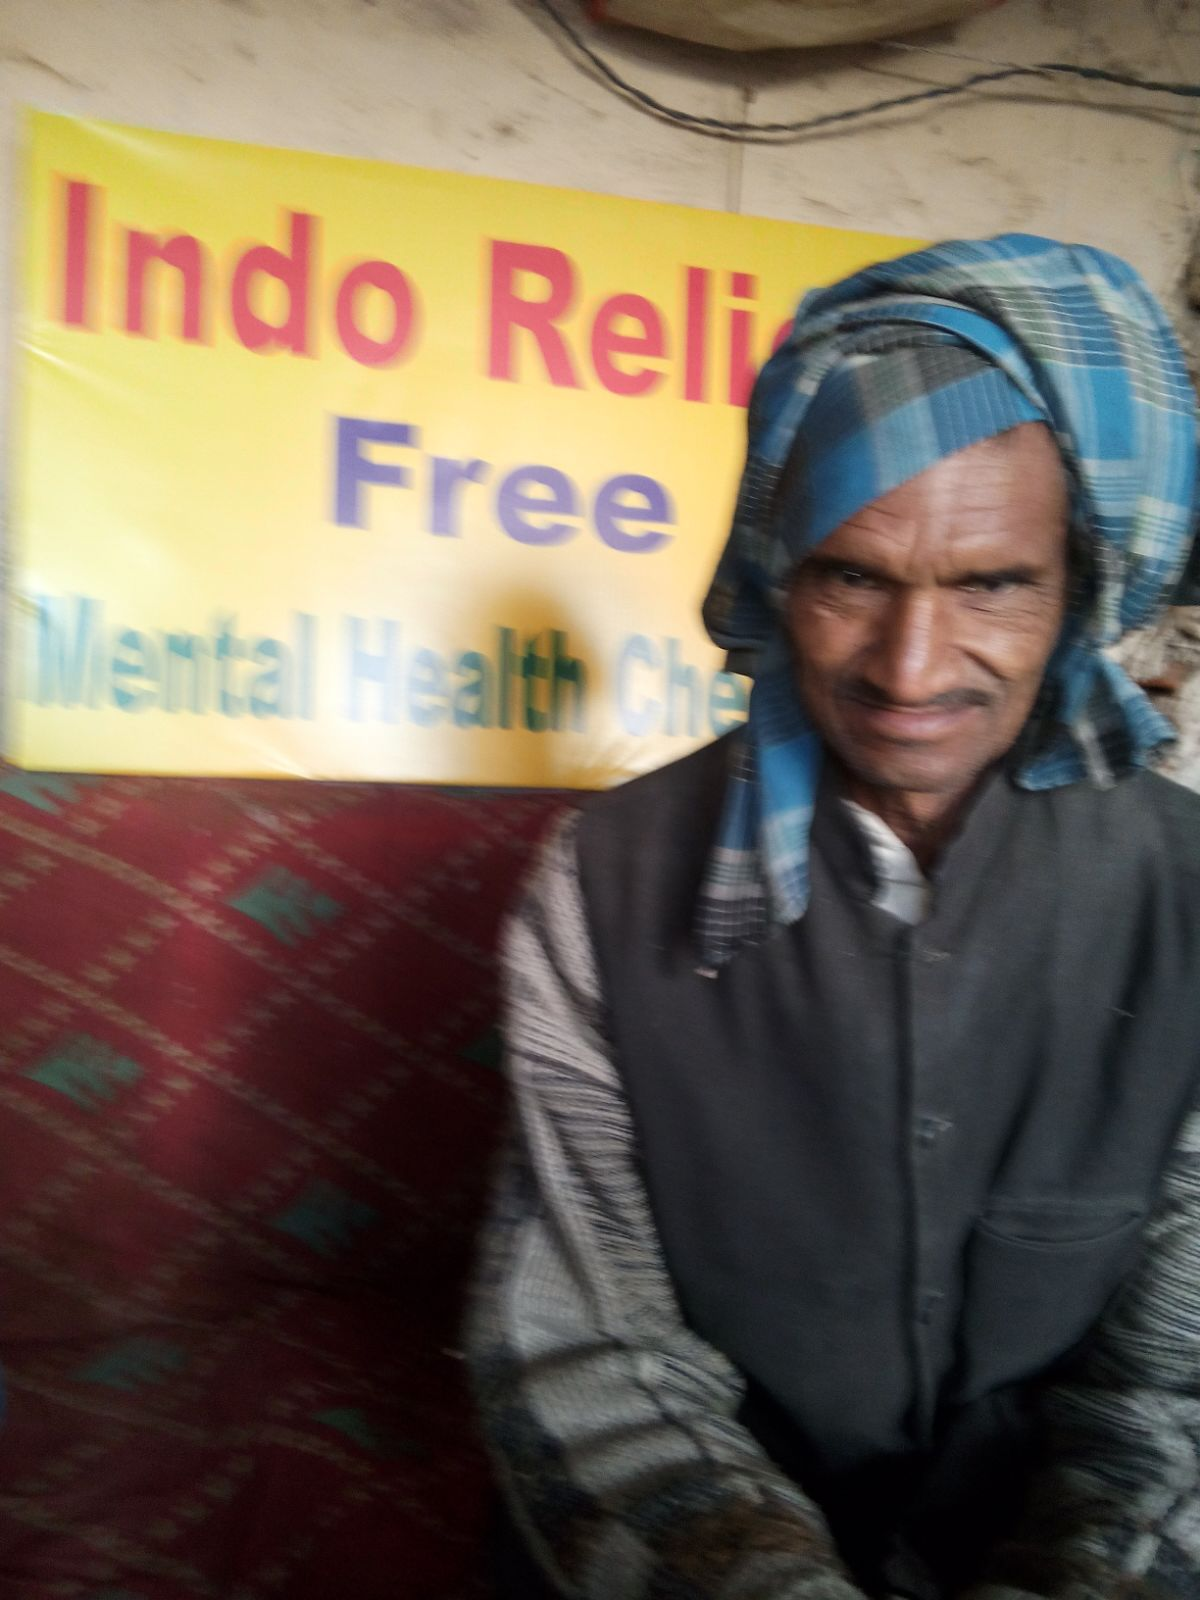 This is Kripal. He is 64 years old. He wants to learn more about mental health.